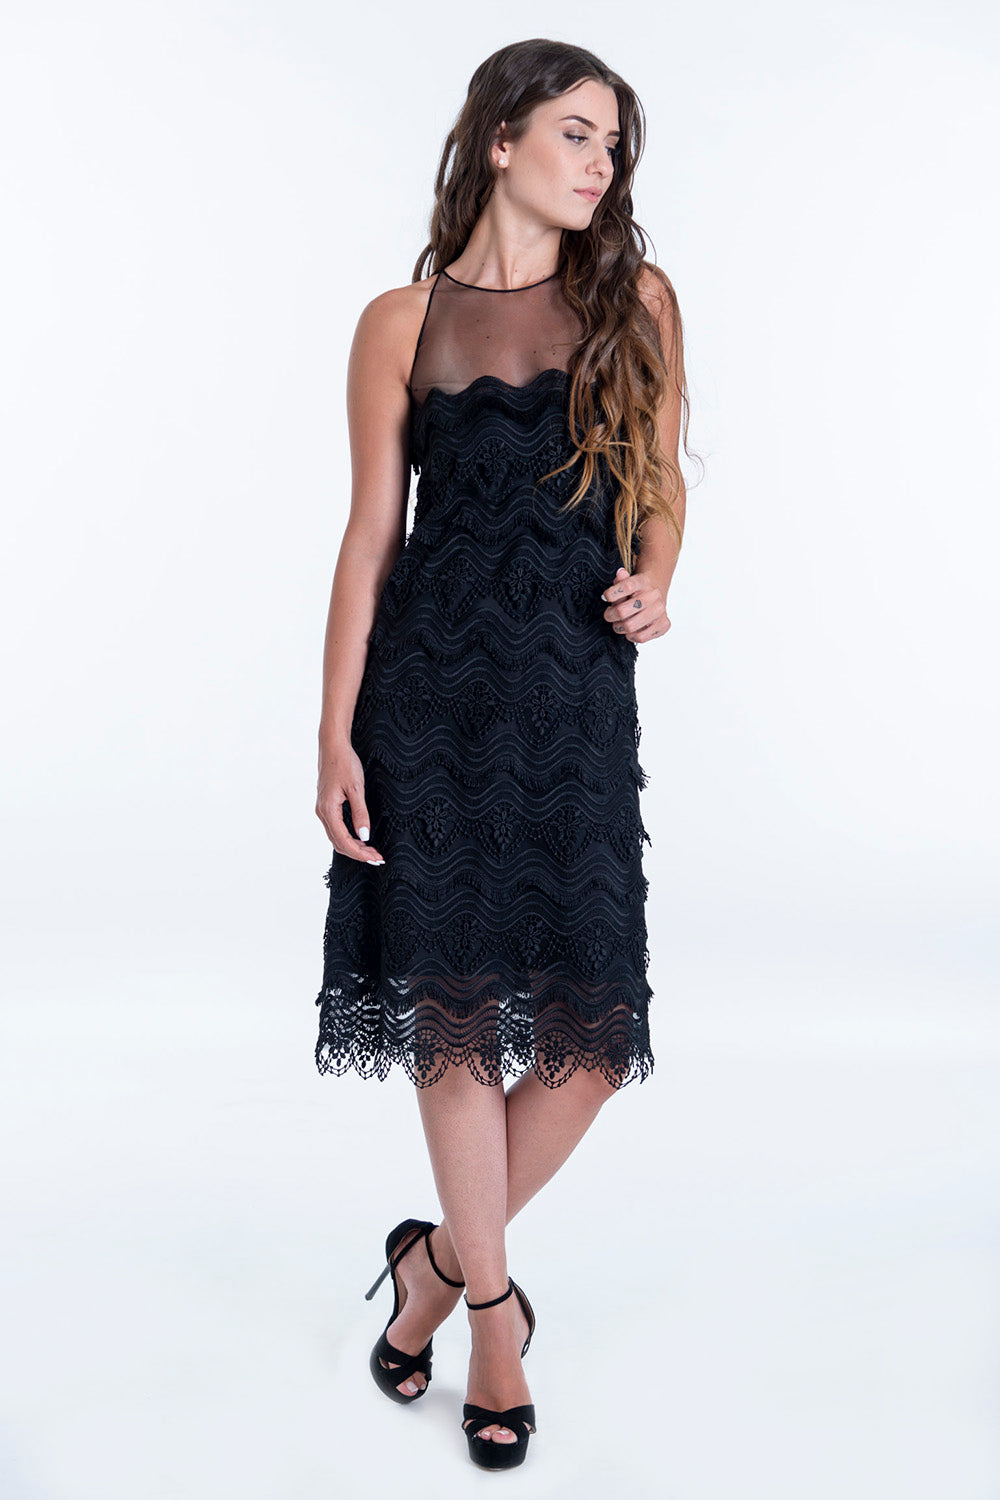 MI-RŌ design lace high neck dress